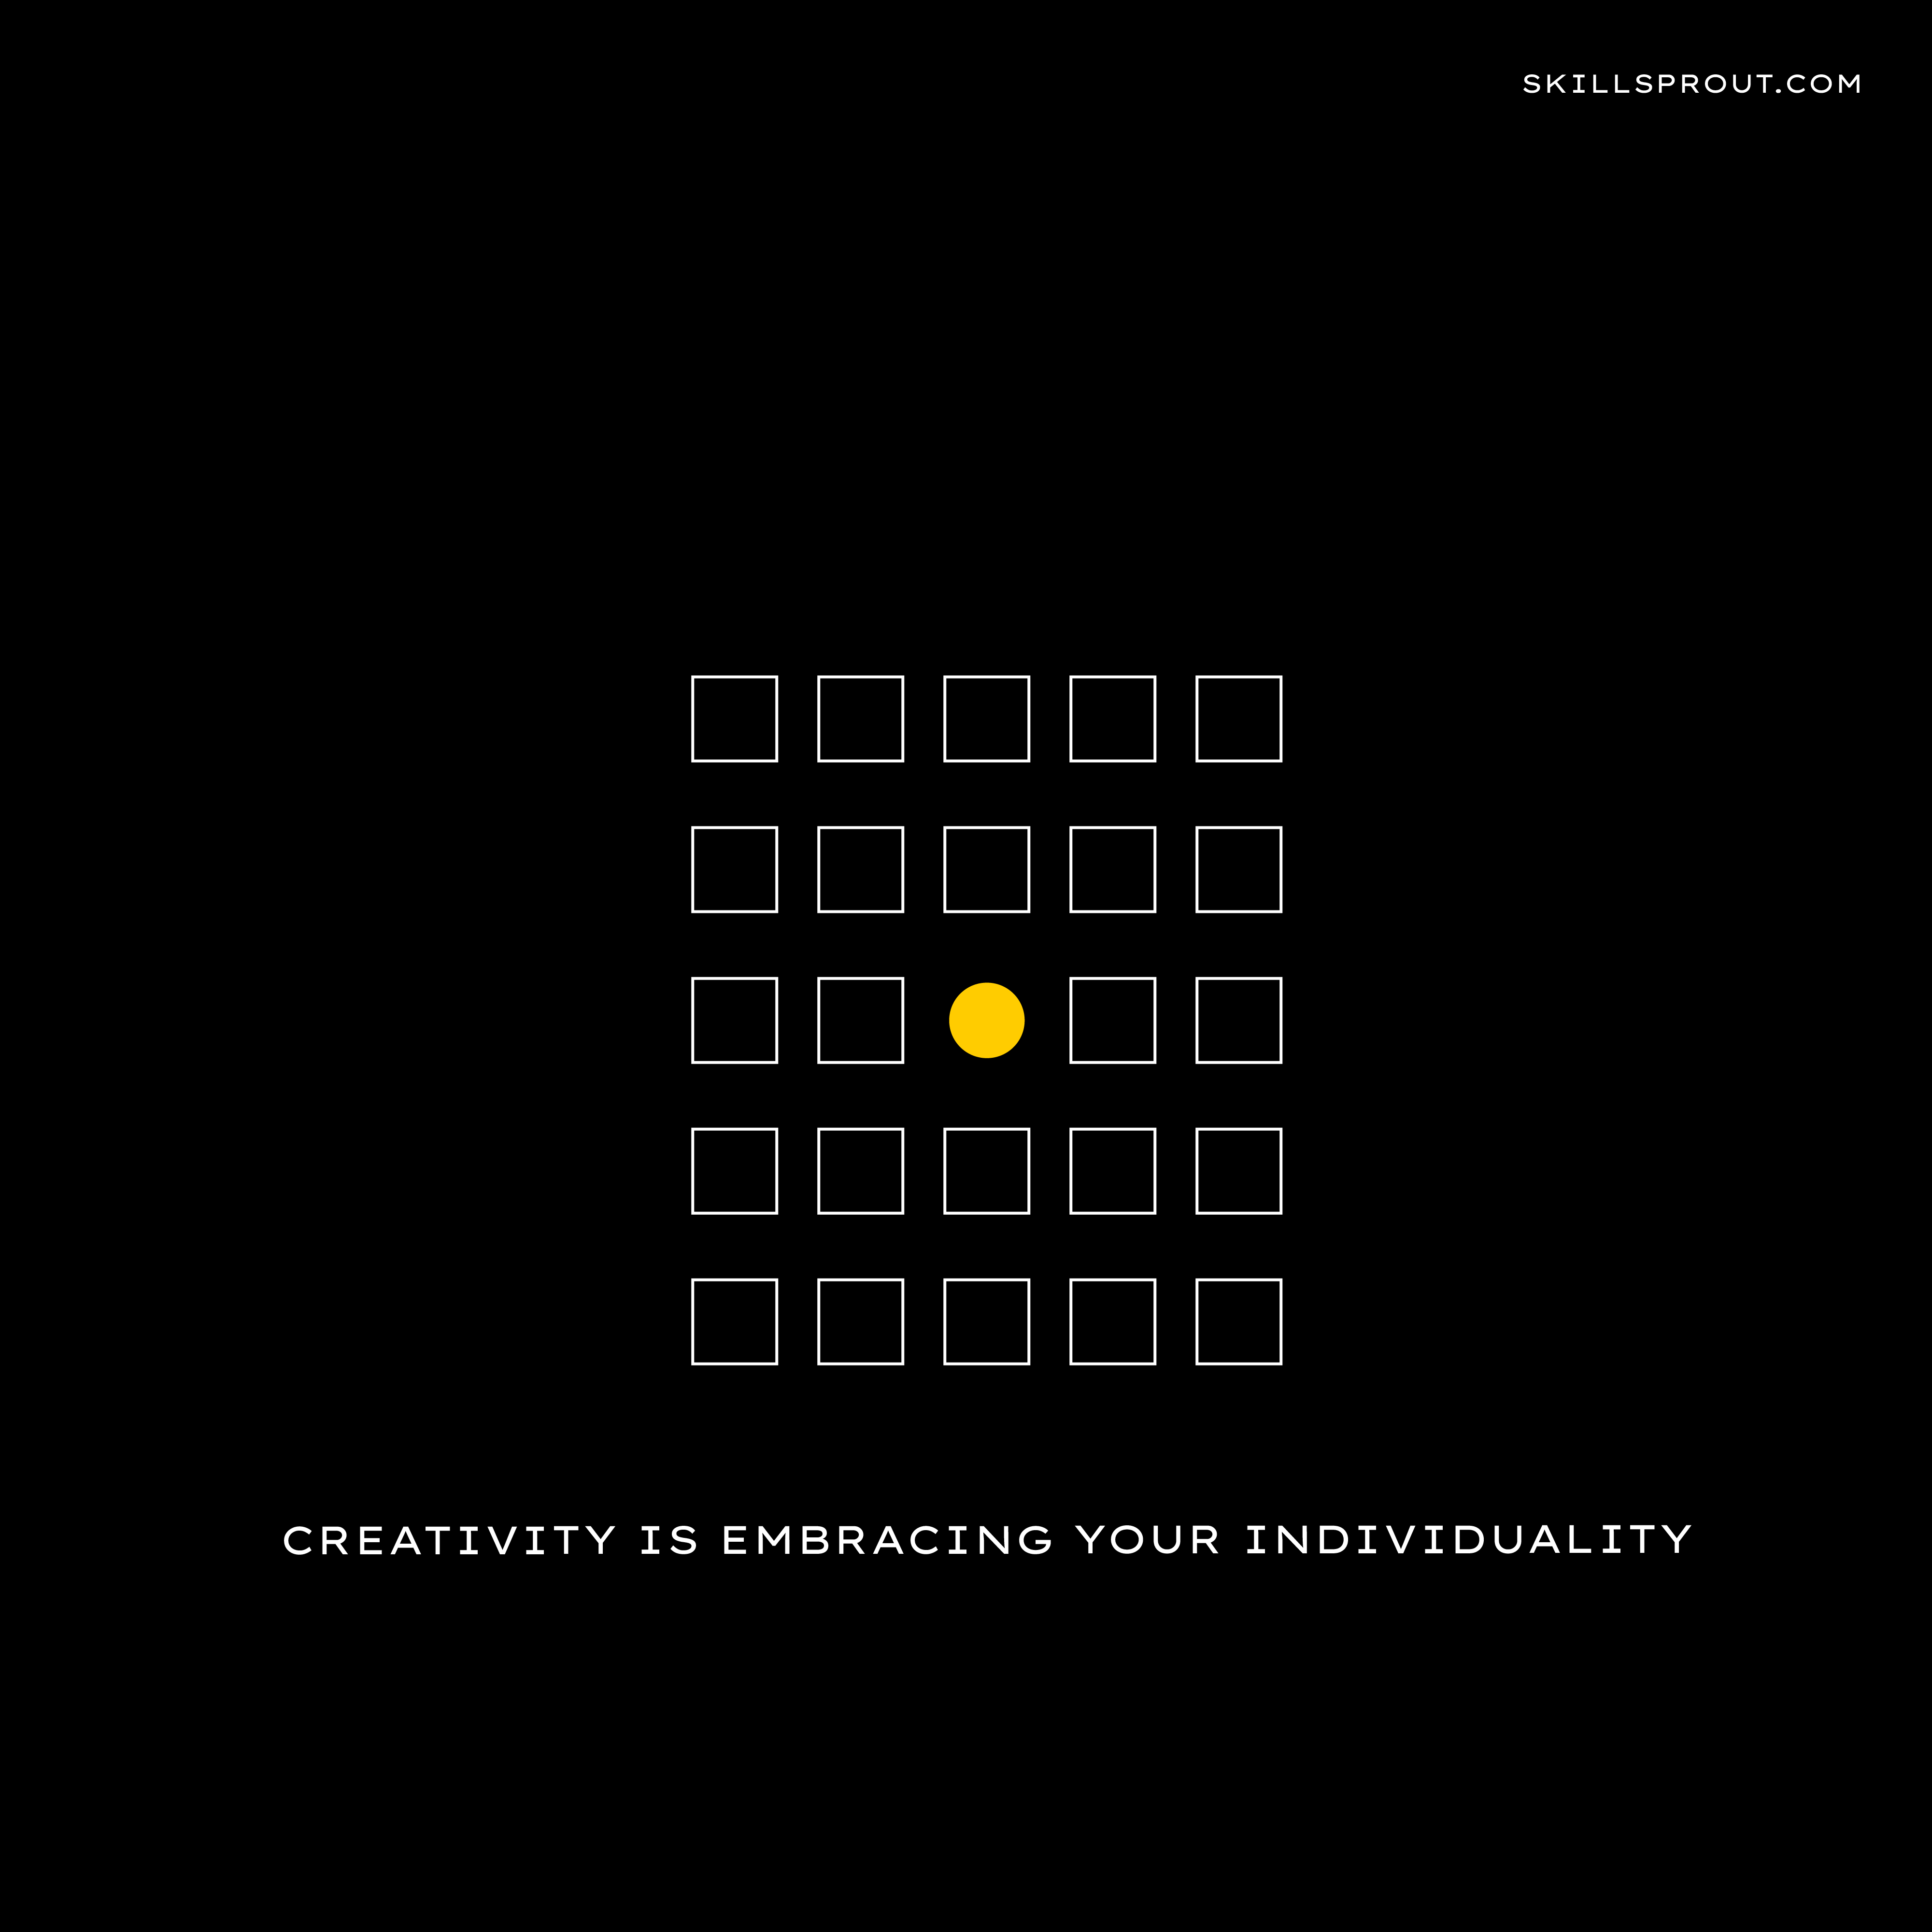 Creativity is embracing your individuality